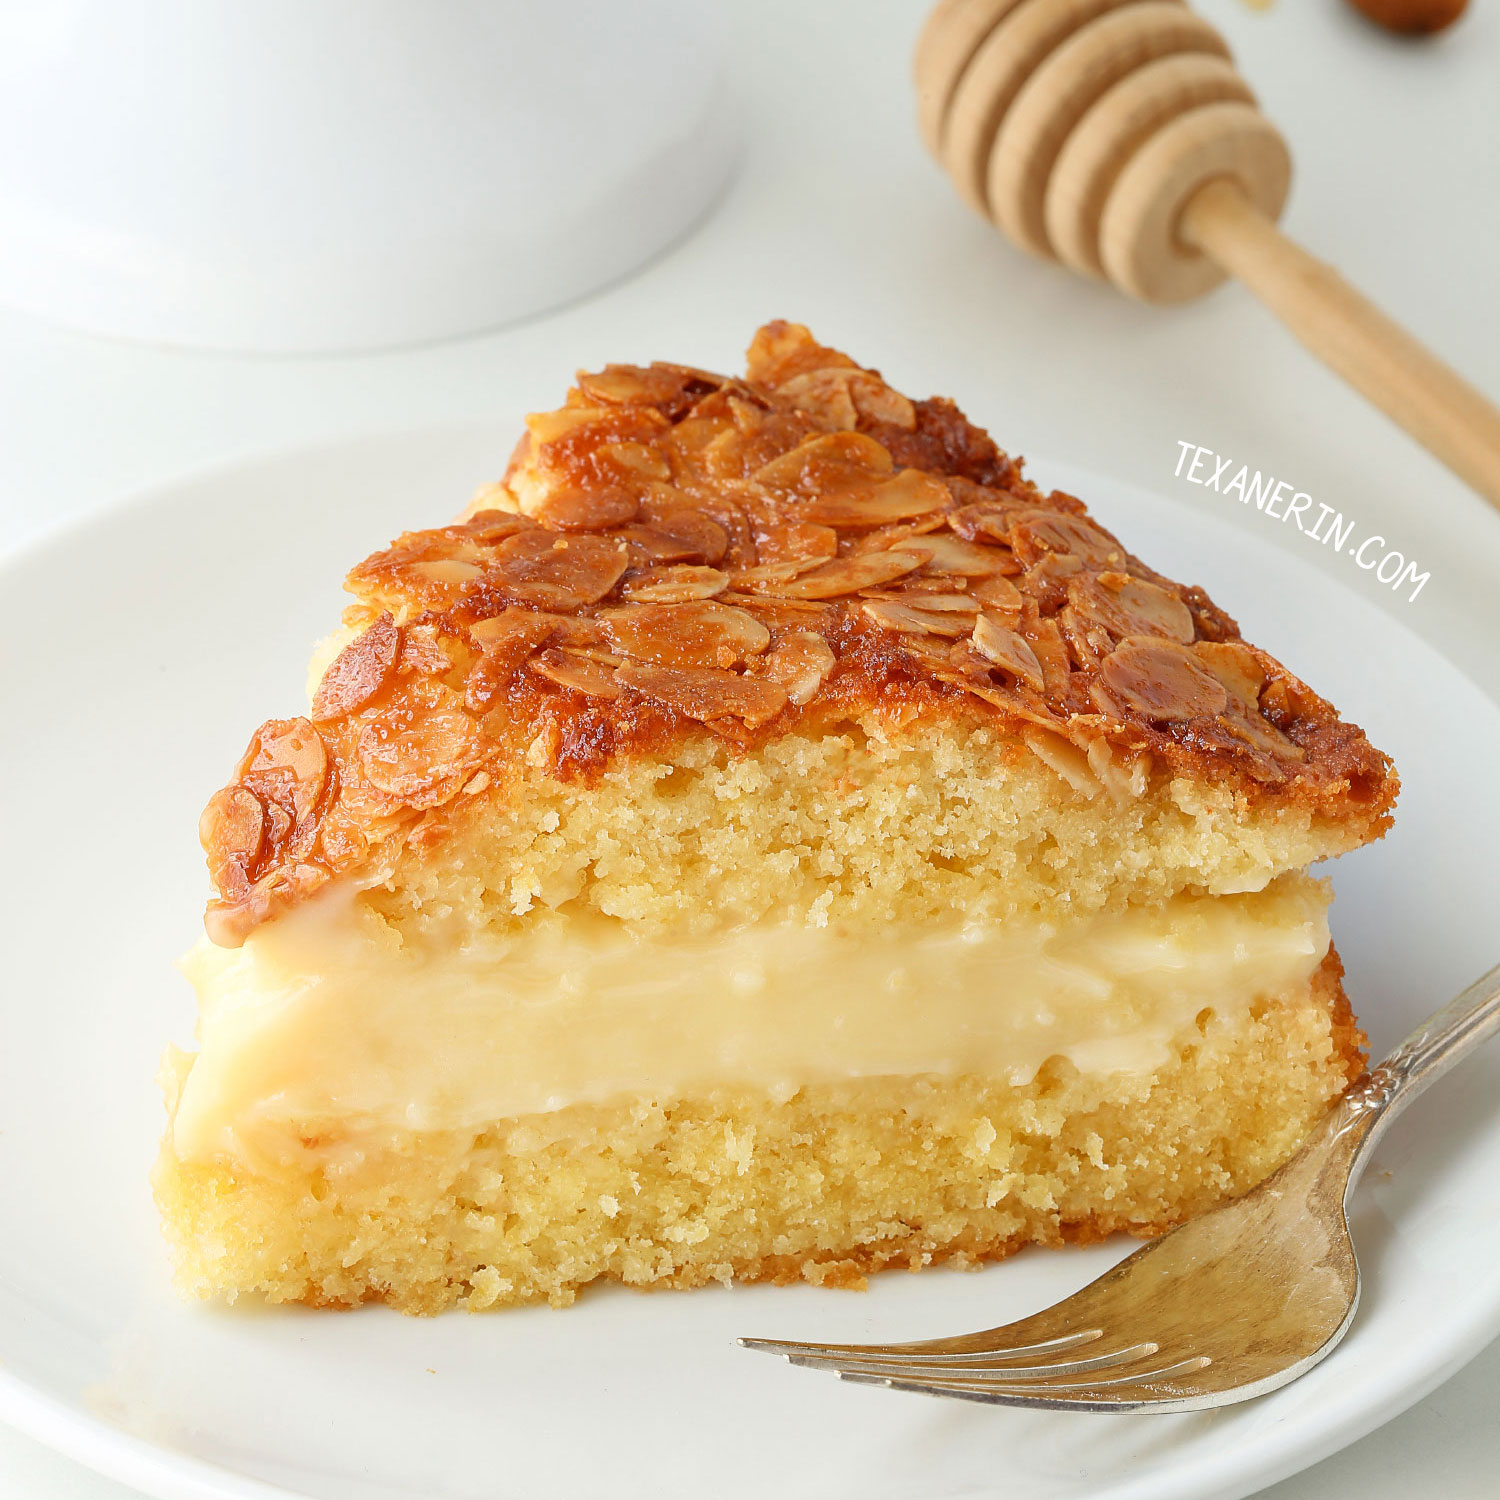 Bienenstich Kuchen Rezept Mit Pudding Bienenstich Bee Sting Cake Gluten Free Whole Grain Dairy Free Options